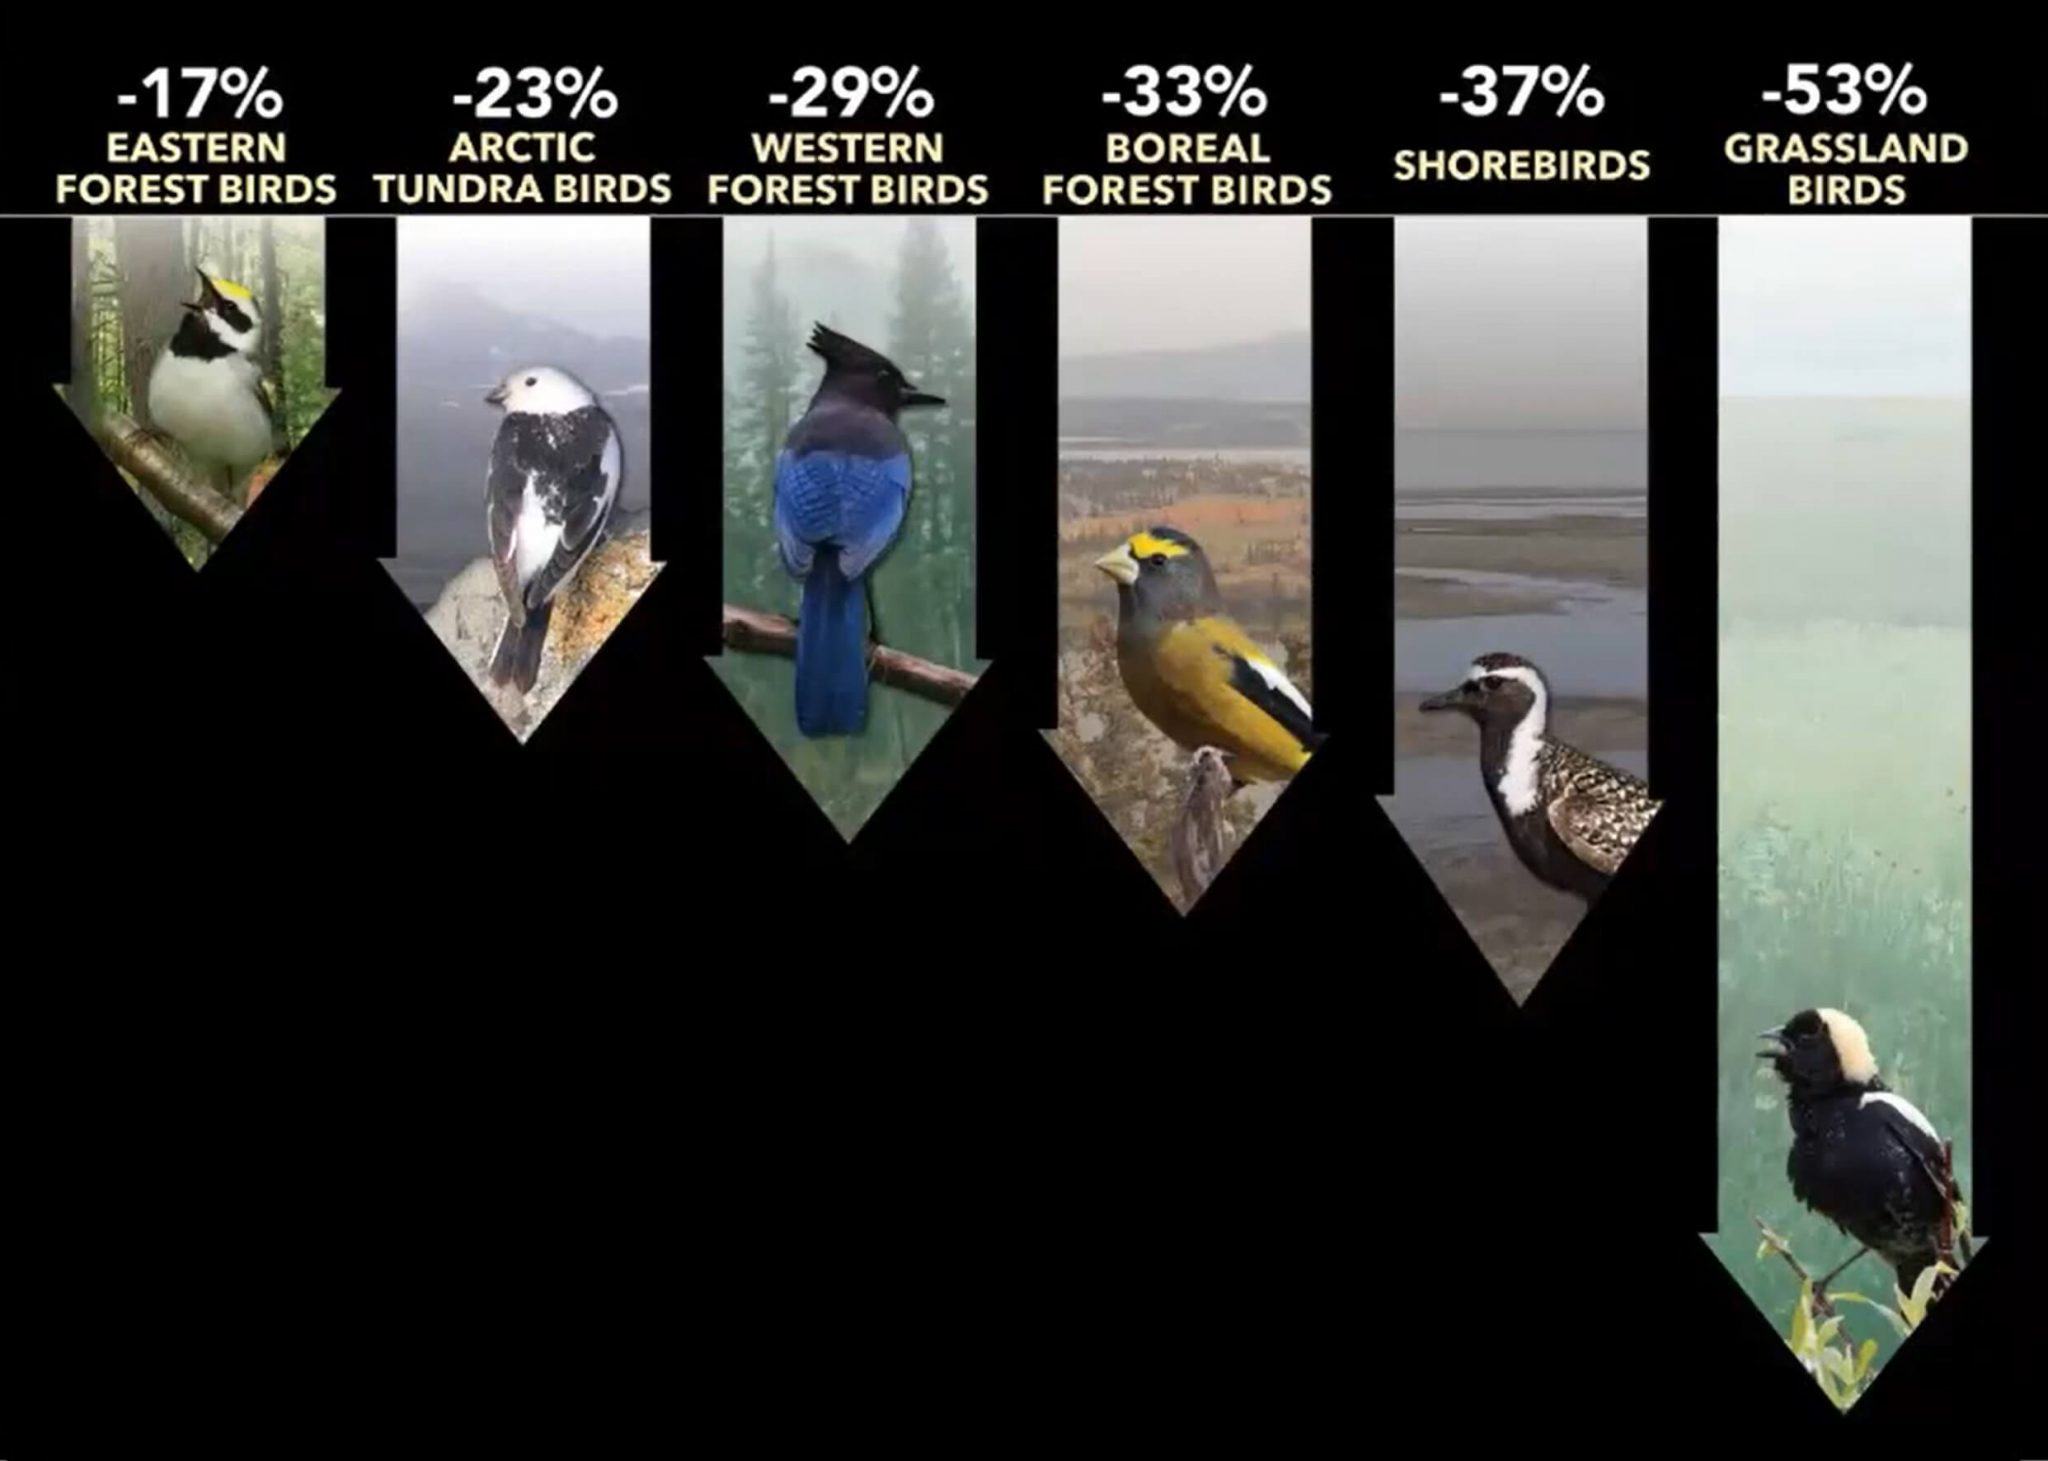 This graph depicts steep declines in bird populations across all guilds and habitat types